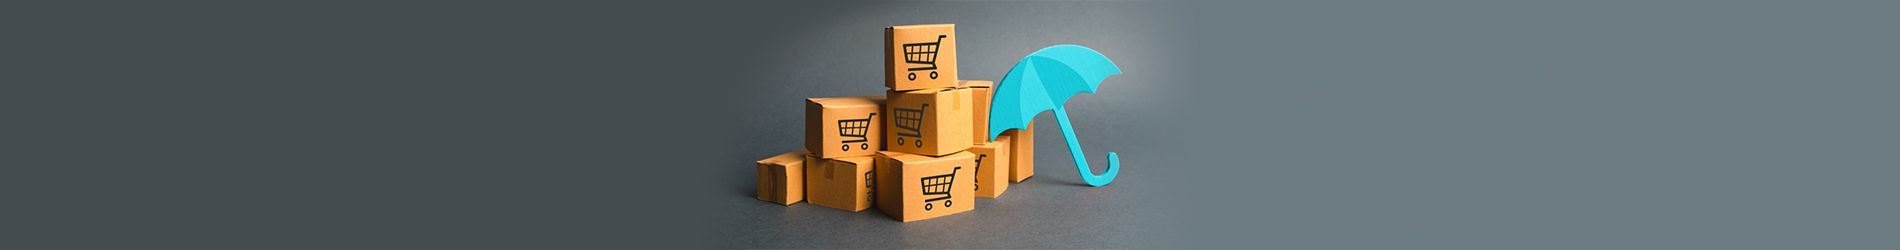 Blue umbrella leaning against wooden blocks with icons of shopping  trollies on them